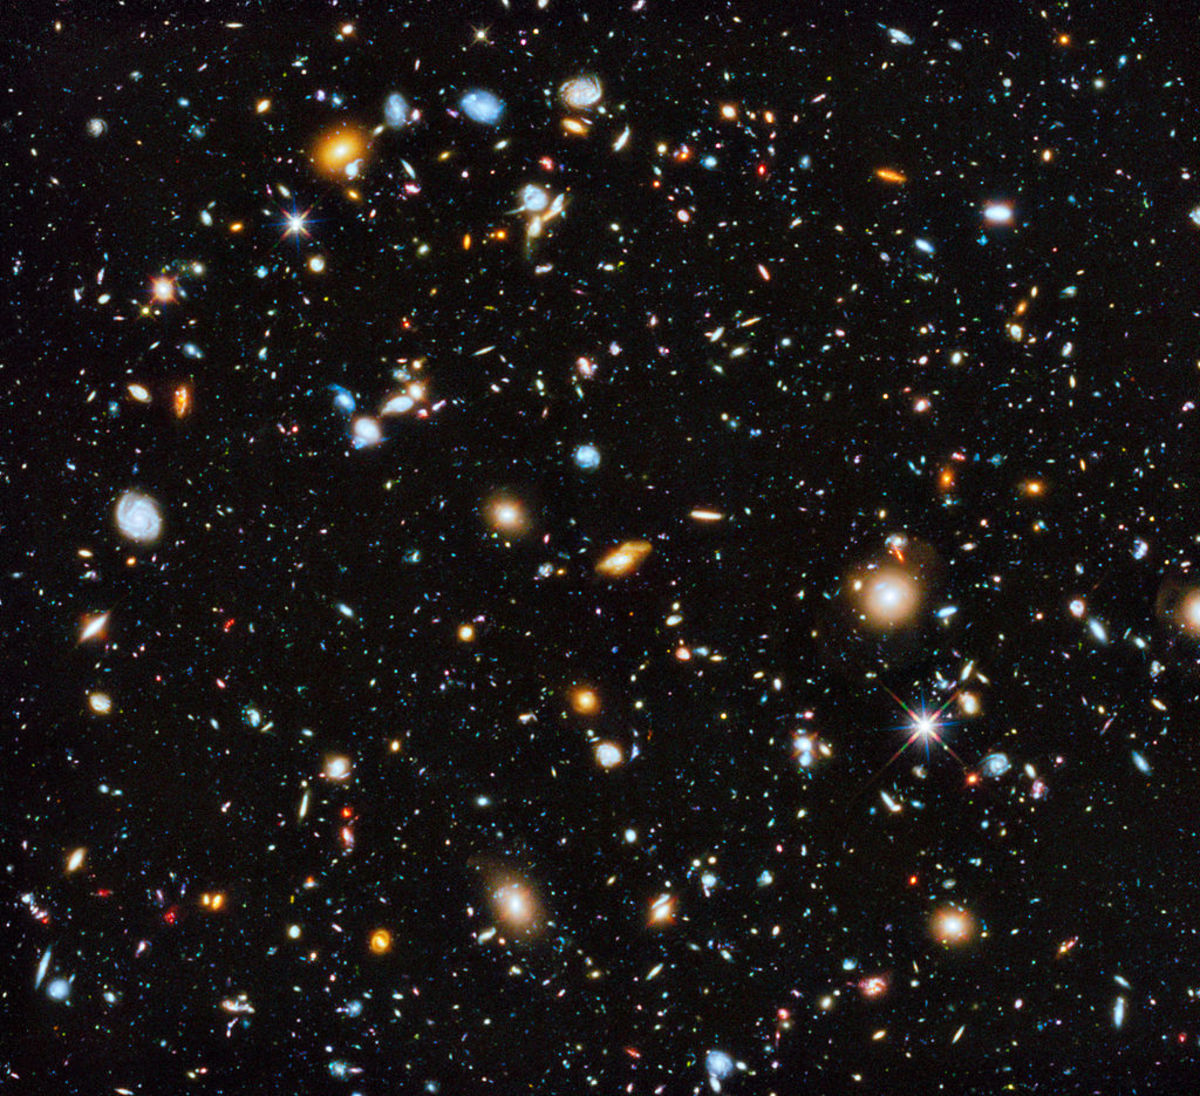 The greatest moment in science? Edwin Hubble discovered the universe is expanding.